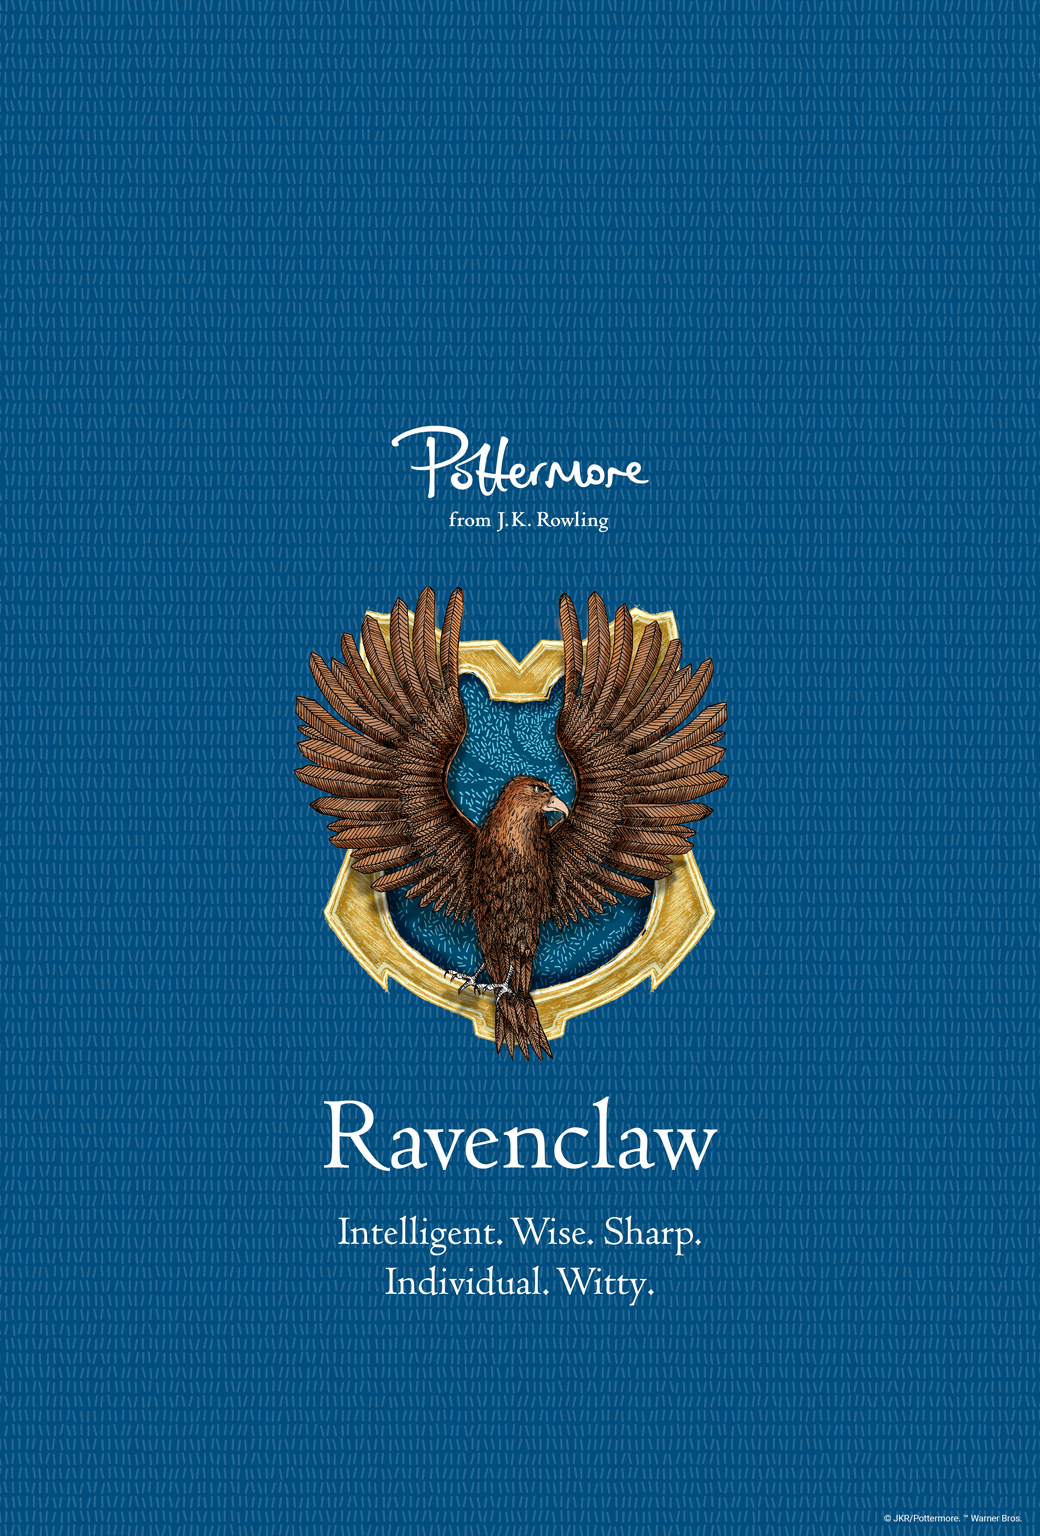 Best Wallpaper Harry Potter Ipad - pm-pride-Ravenclaw-iPhone-Wallpaper-1040-x-1536-px  Gallery_168393.png